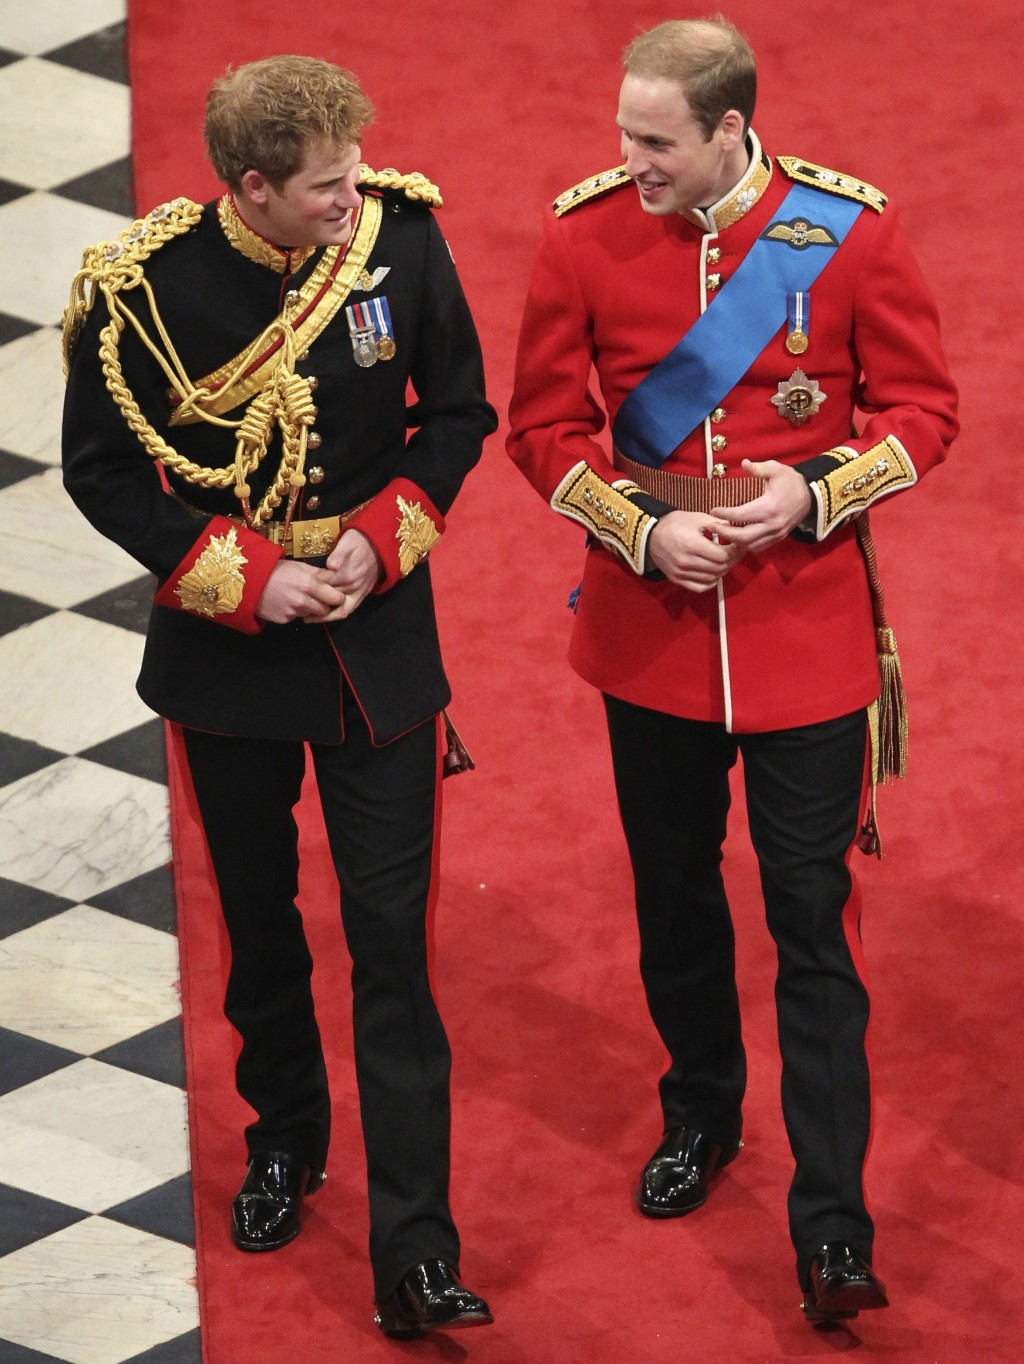 FILE - In this Friday, April 29, 2011 file photo, Britain's Prince Harry, left, best man to Britain's Prince William, right, arrive ahead of Prince Wi...